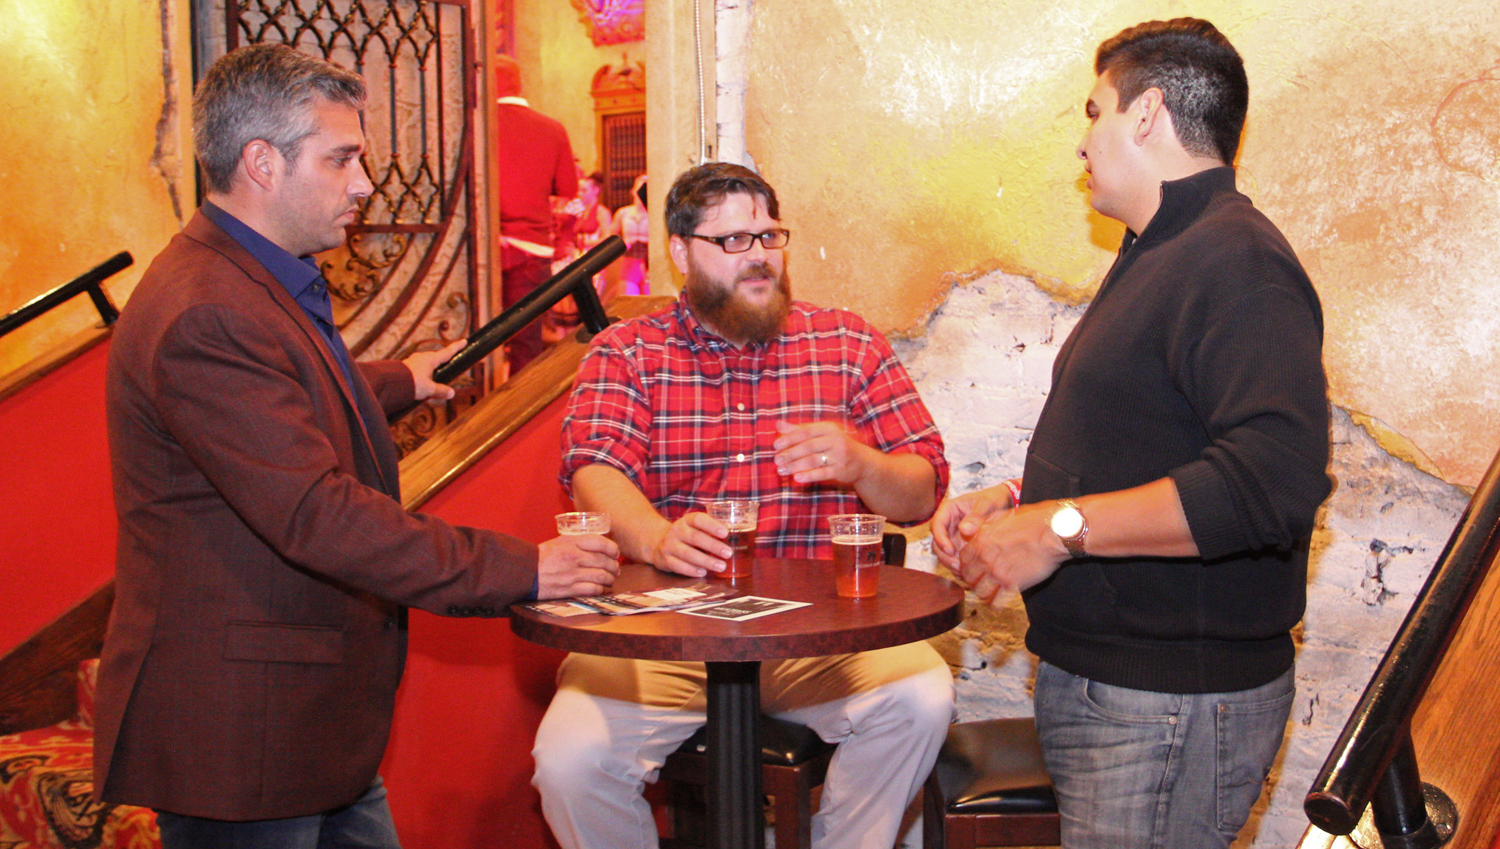 Jason Schmidt, Thomas Bolton with Maker's Mark and Luke Flint